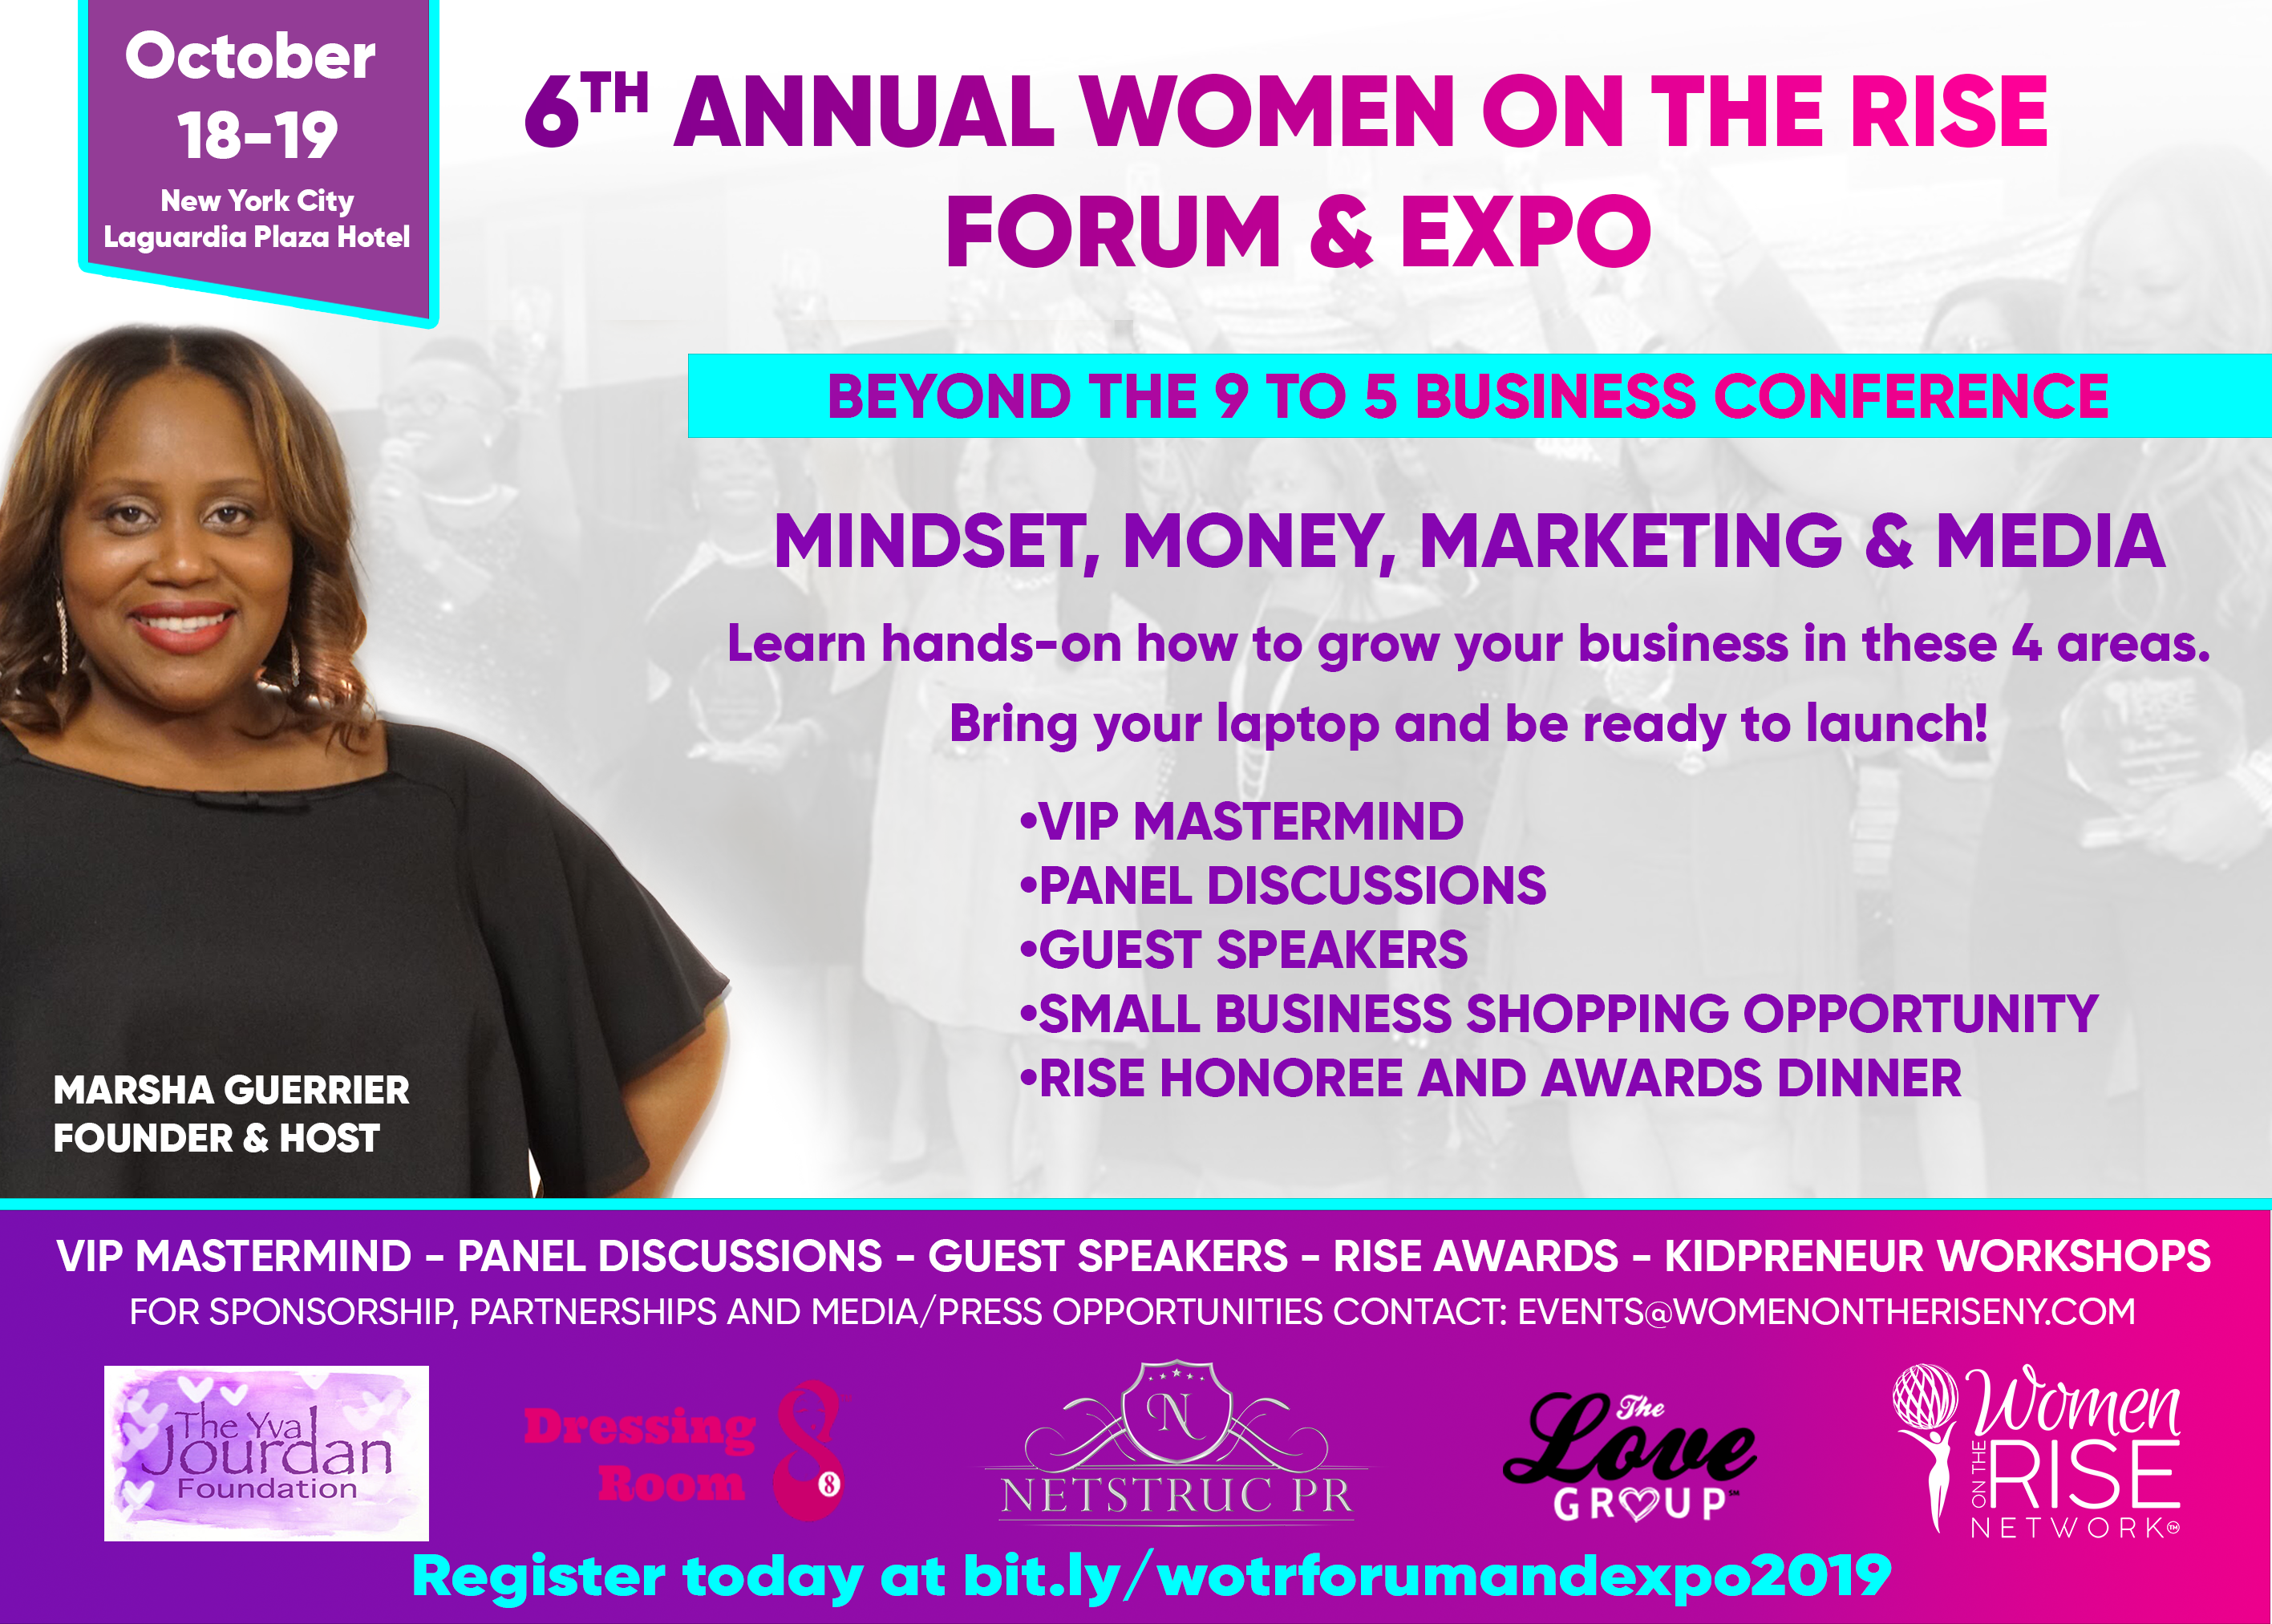 Women on the Rise Forum & Expo returns to the Laguardia Plaza Hotel